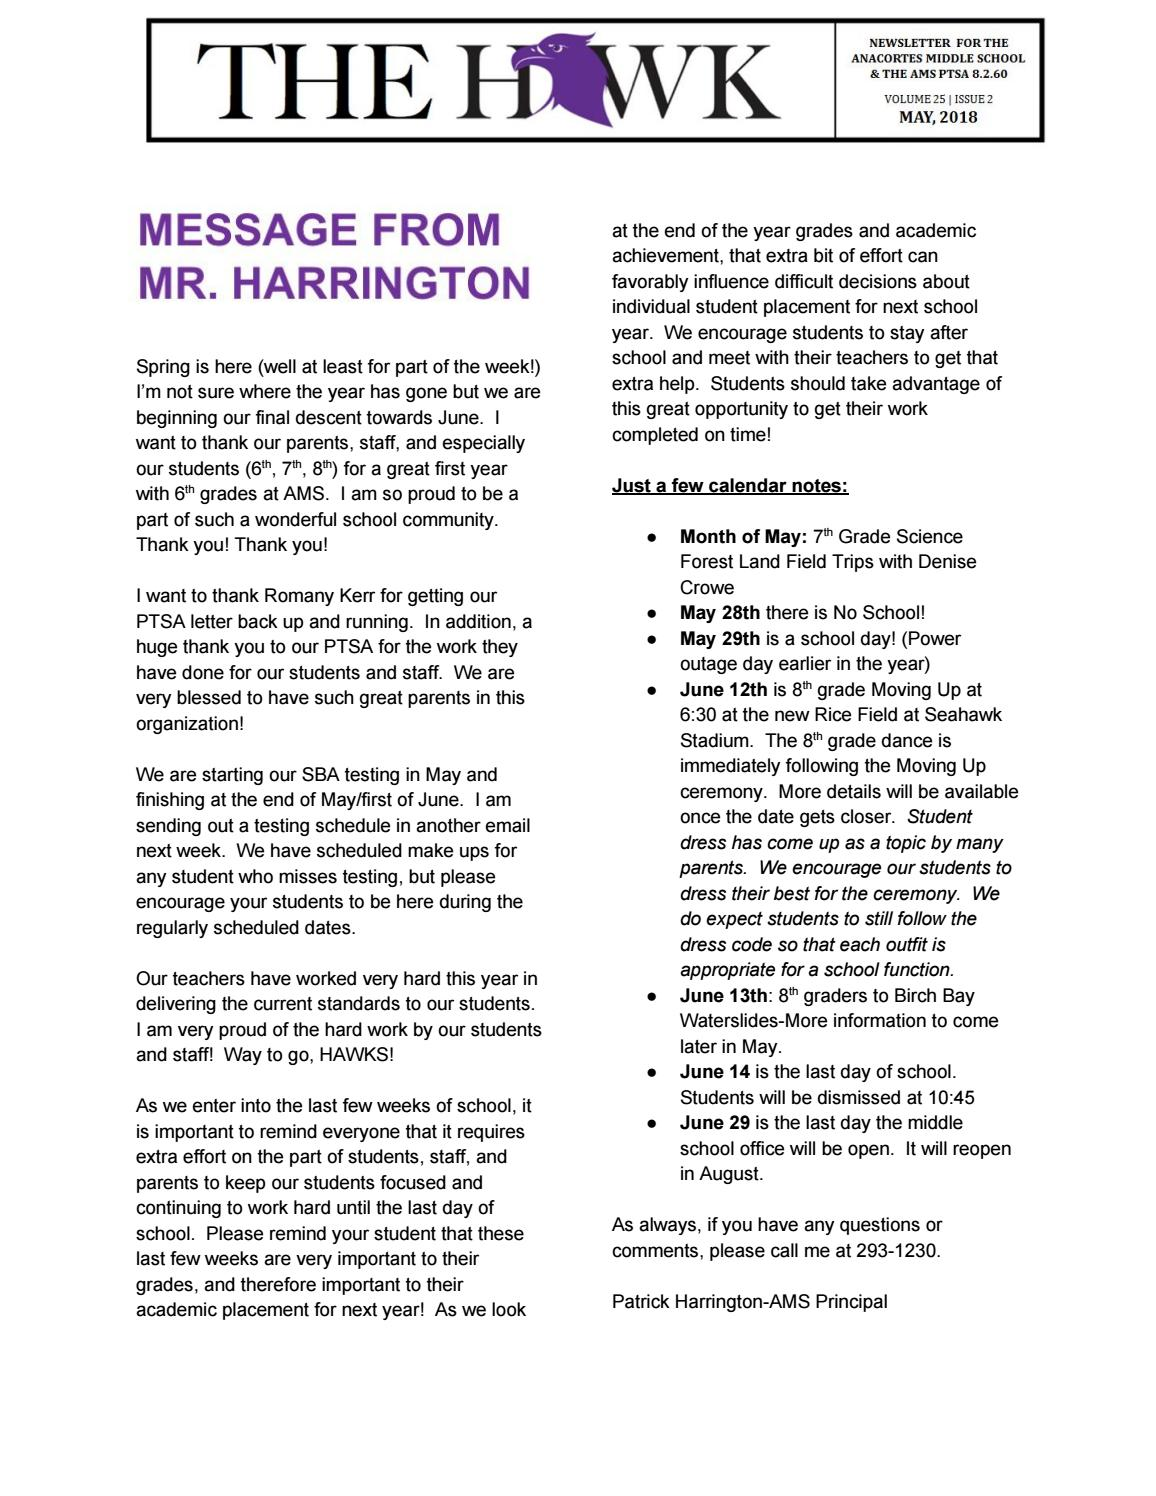 Anacortes Middle School Hawk May Newsletter By Anacortes Middle